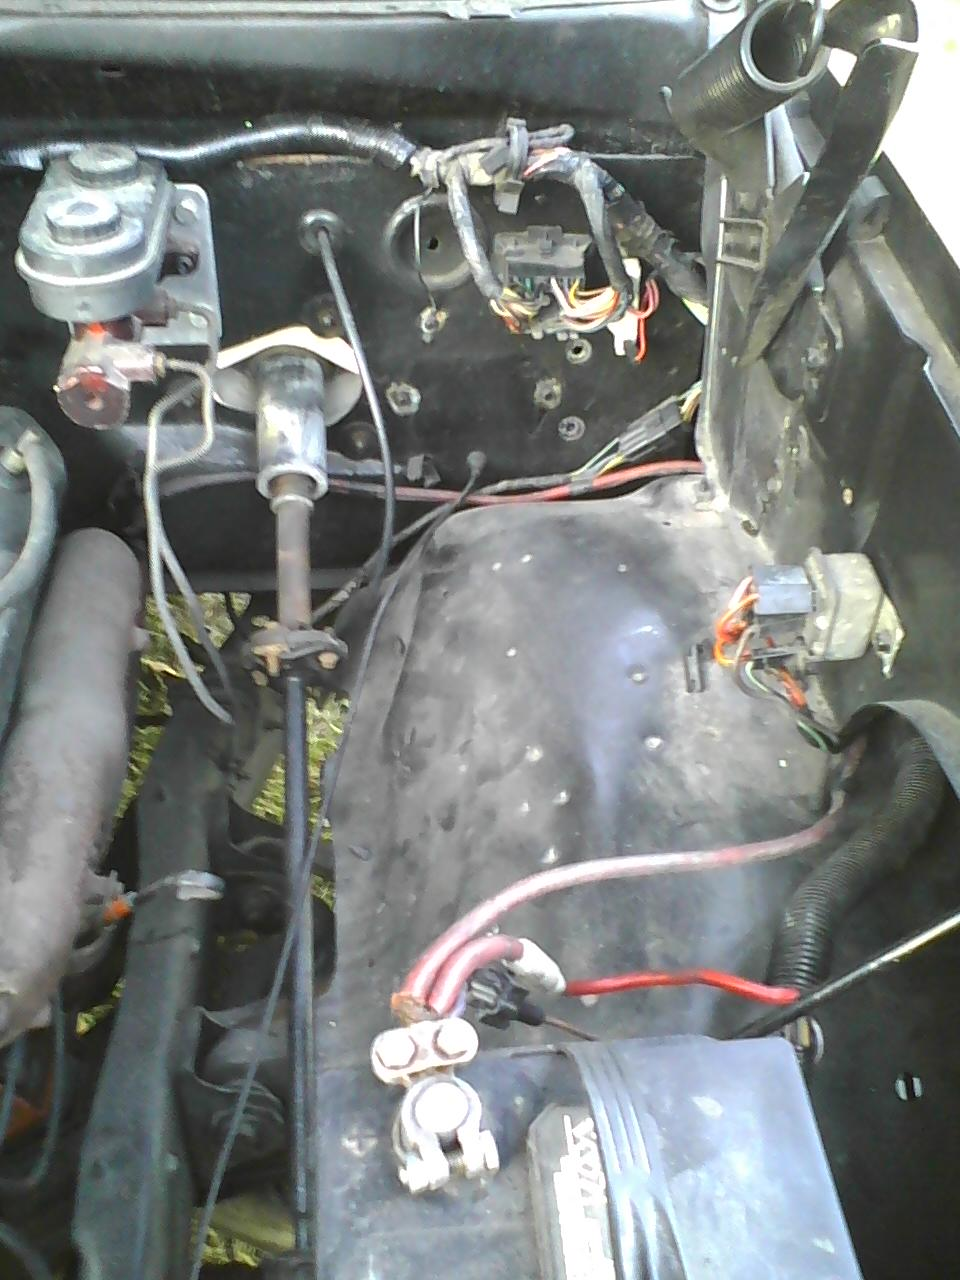 88 Ramcharger Wont Start Moparts Question And Answer Ecu Wiring Diagram 7426407 Afterwireharness